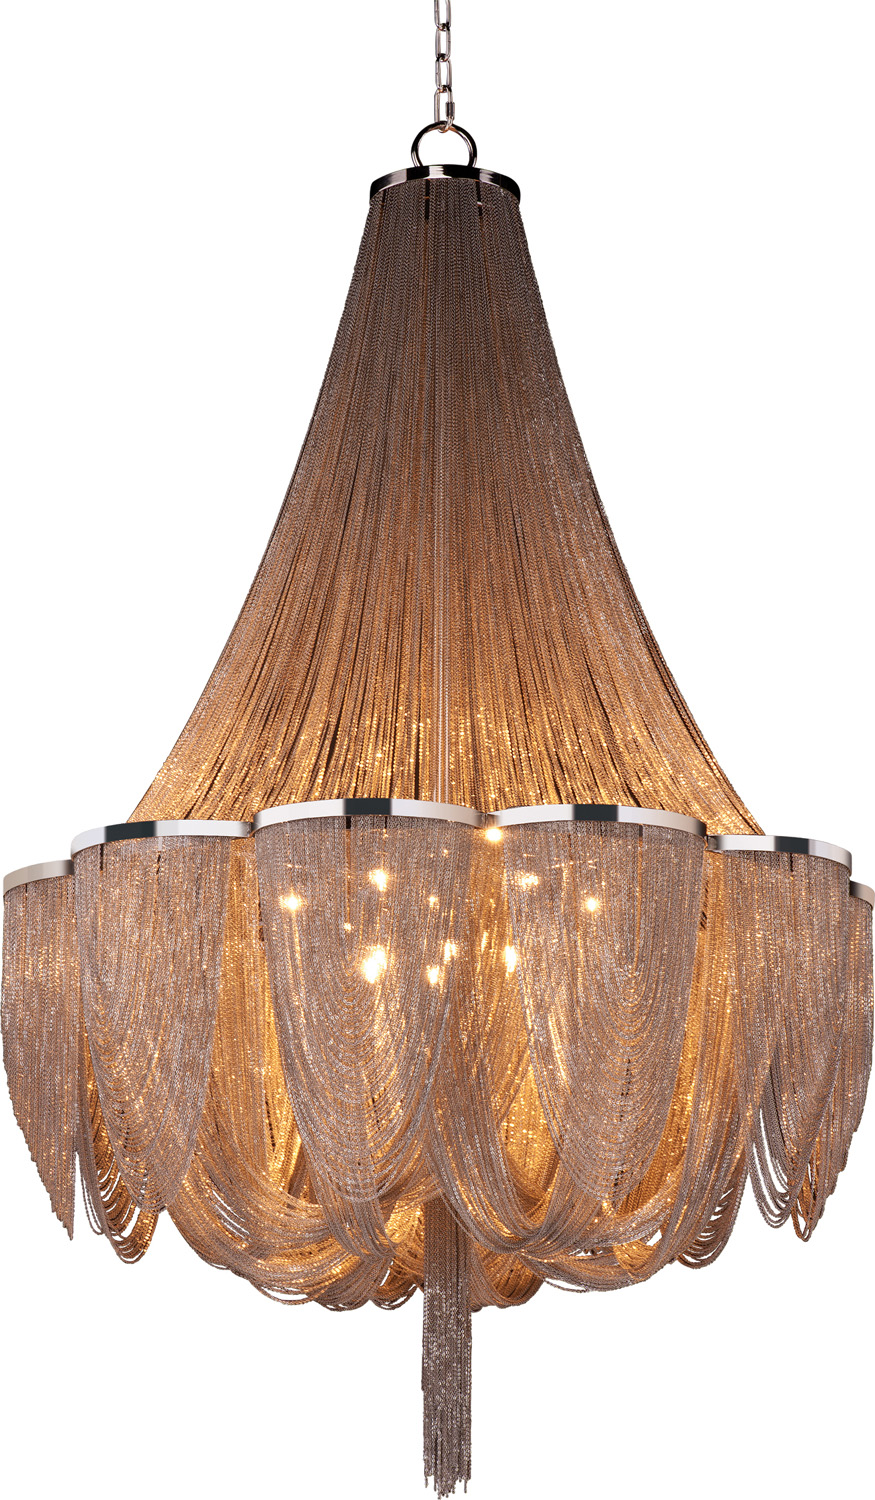 14 Light Chandelier from the Chantilly collection by Maxim 21467NKPN